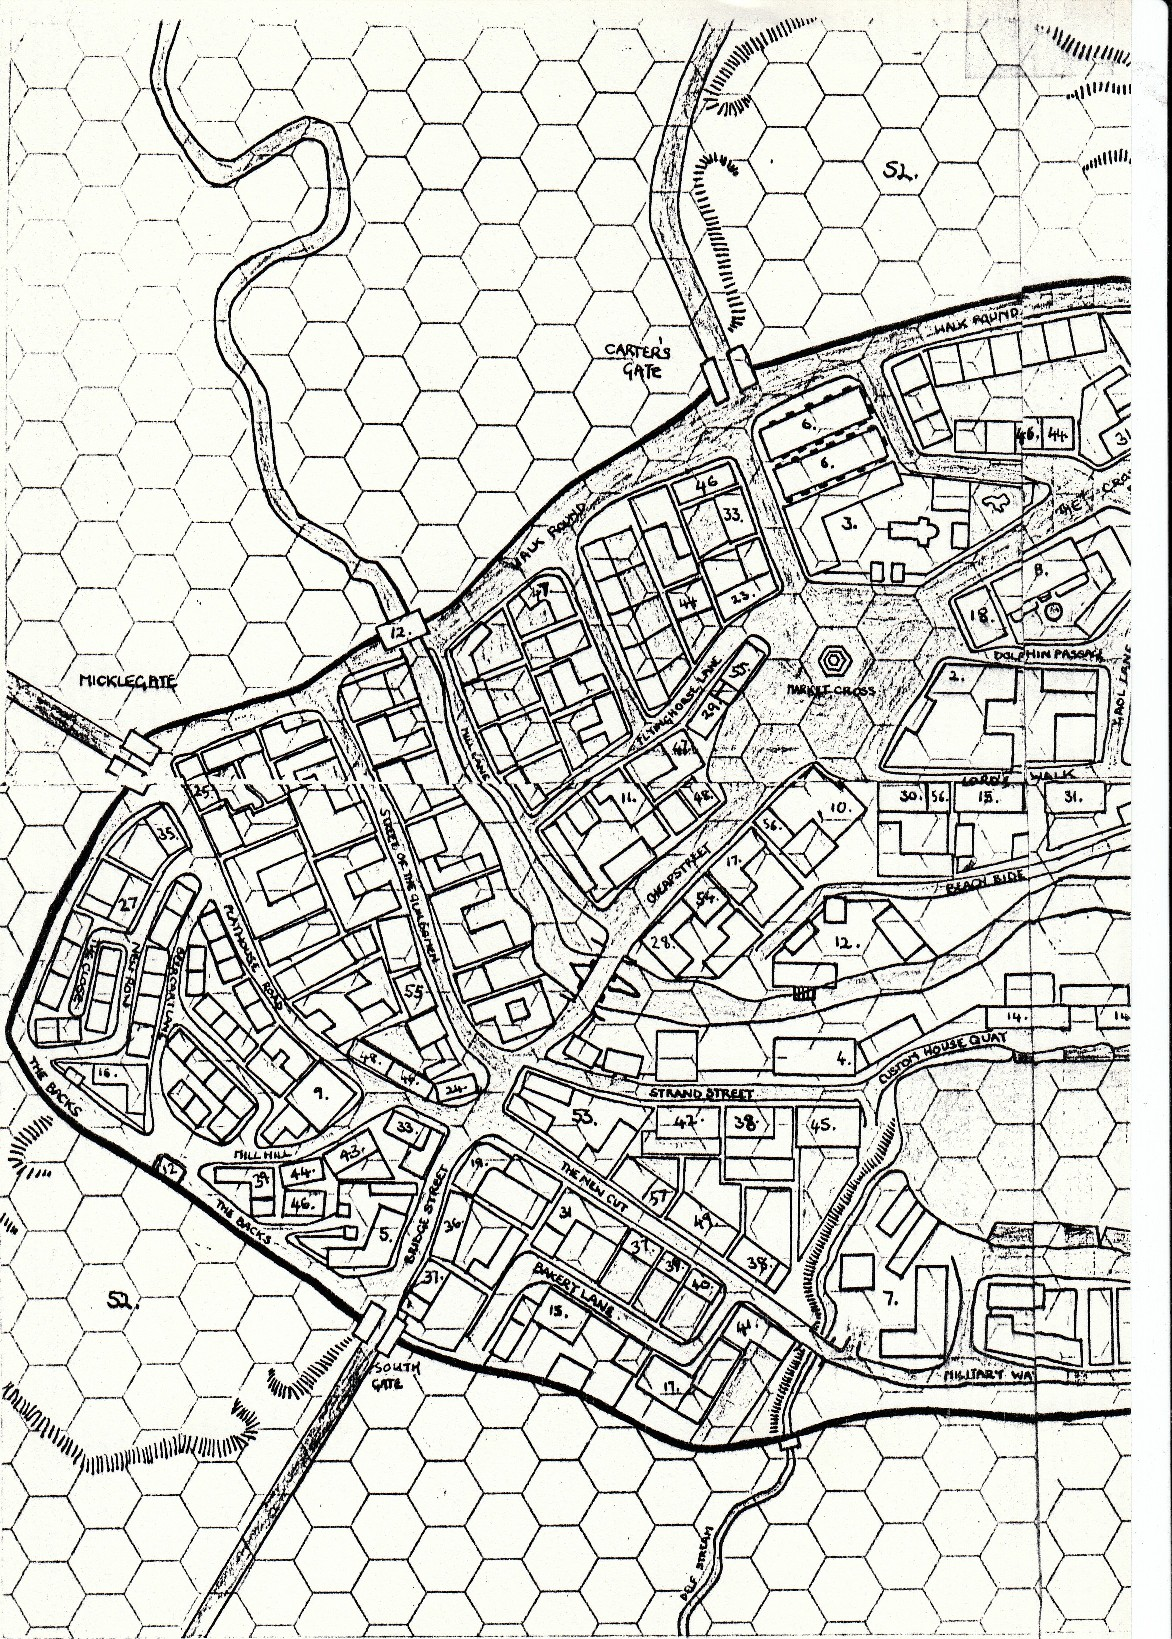 Brymston_town_map_west.jpg